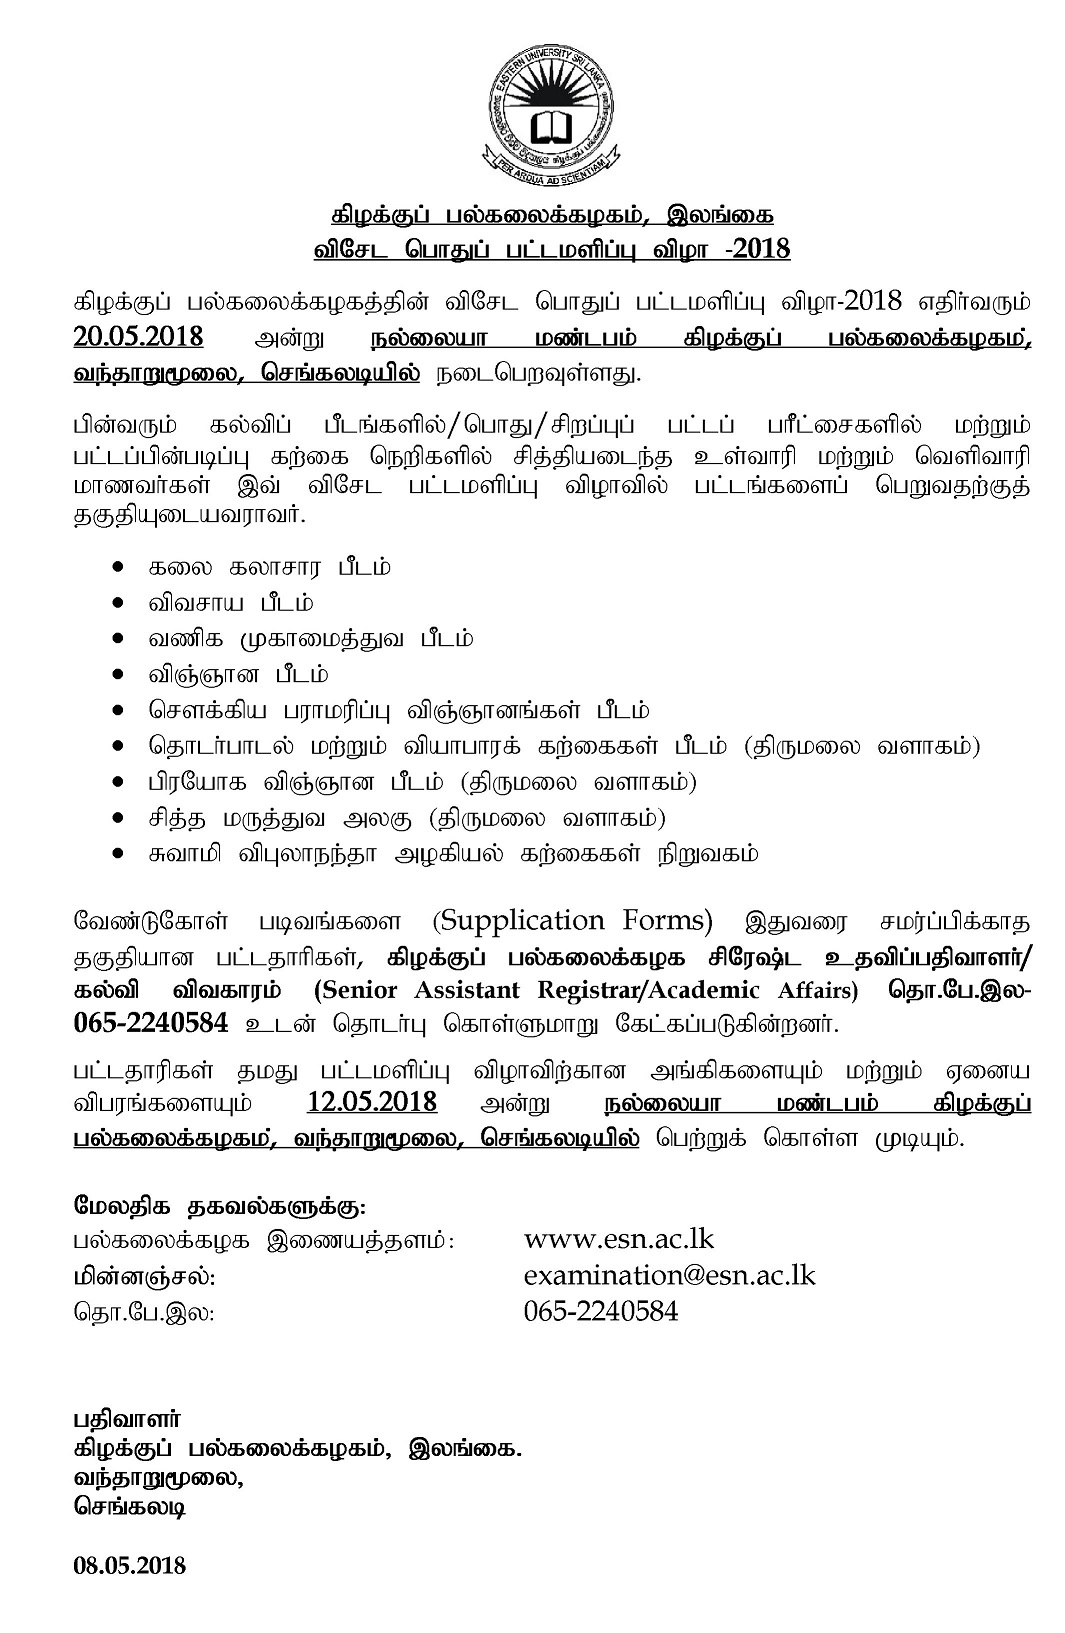 special convocation may 2018 esn.ac.lk tamil